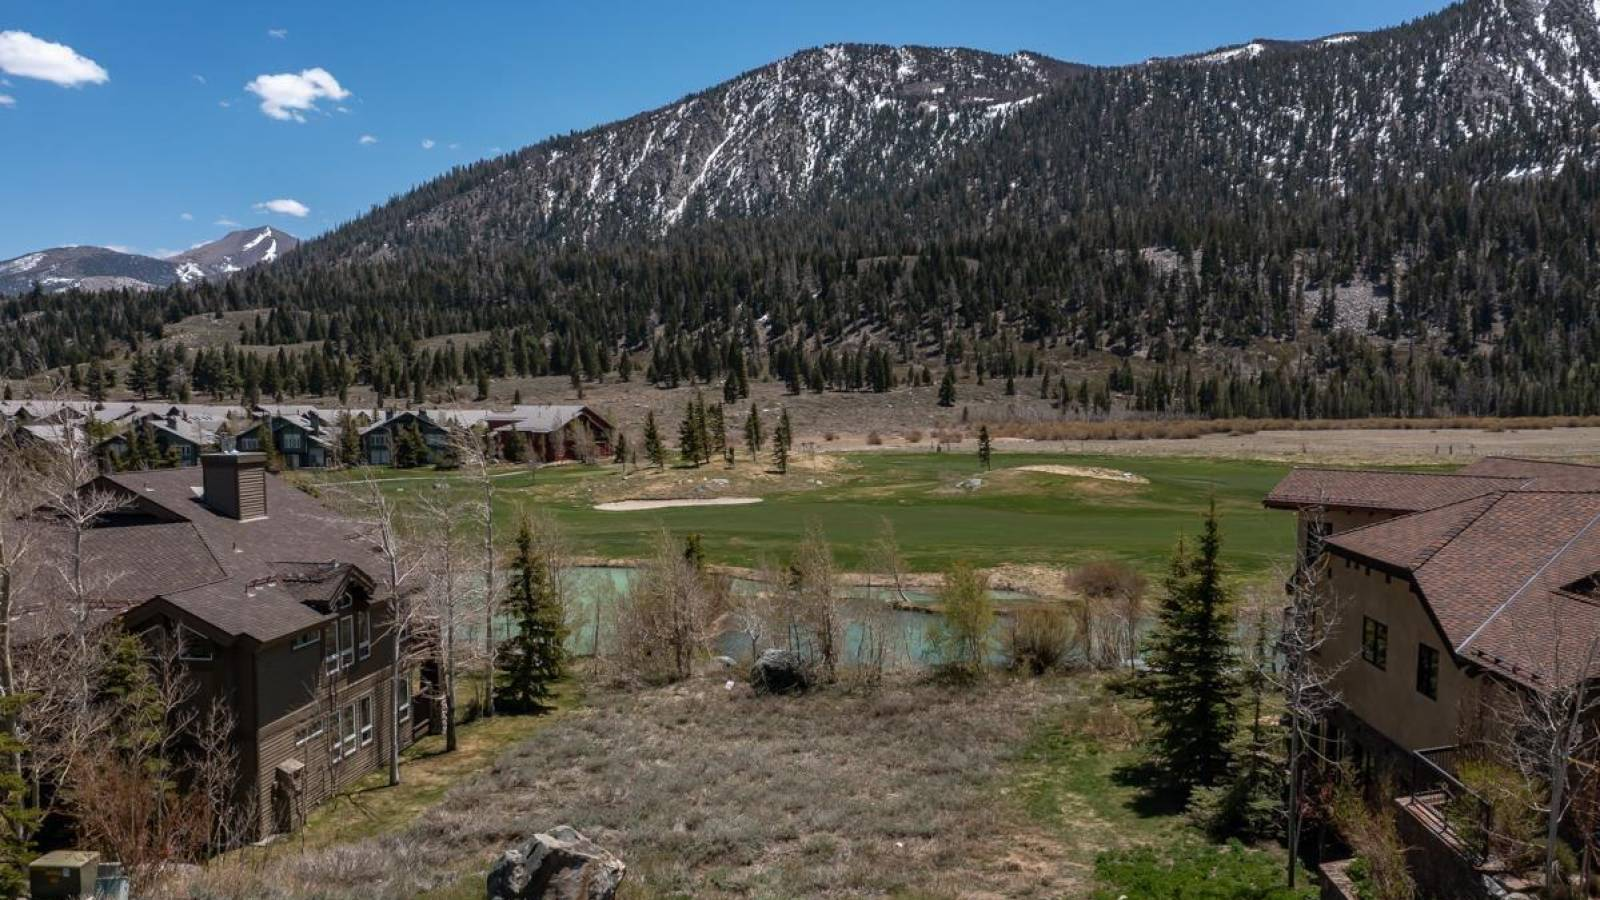 102 Woodcrest Trl, Mammoth Lakes, California 93546, ,Vacant Land,For Sale,Woodcrest Trl,210431